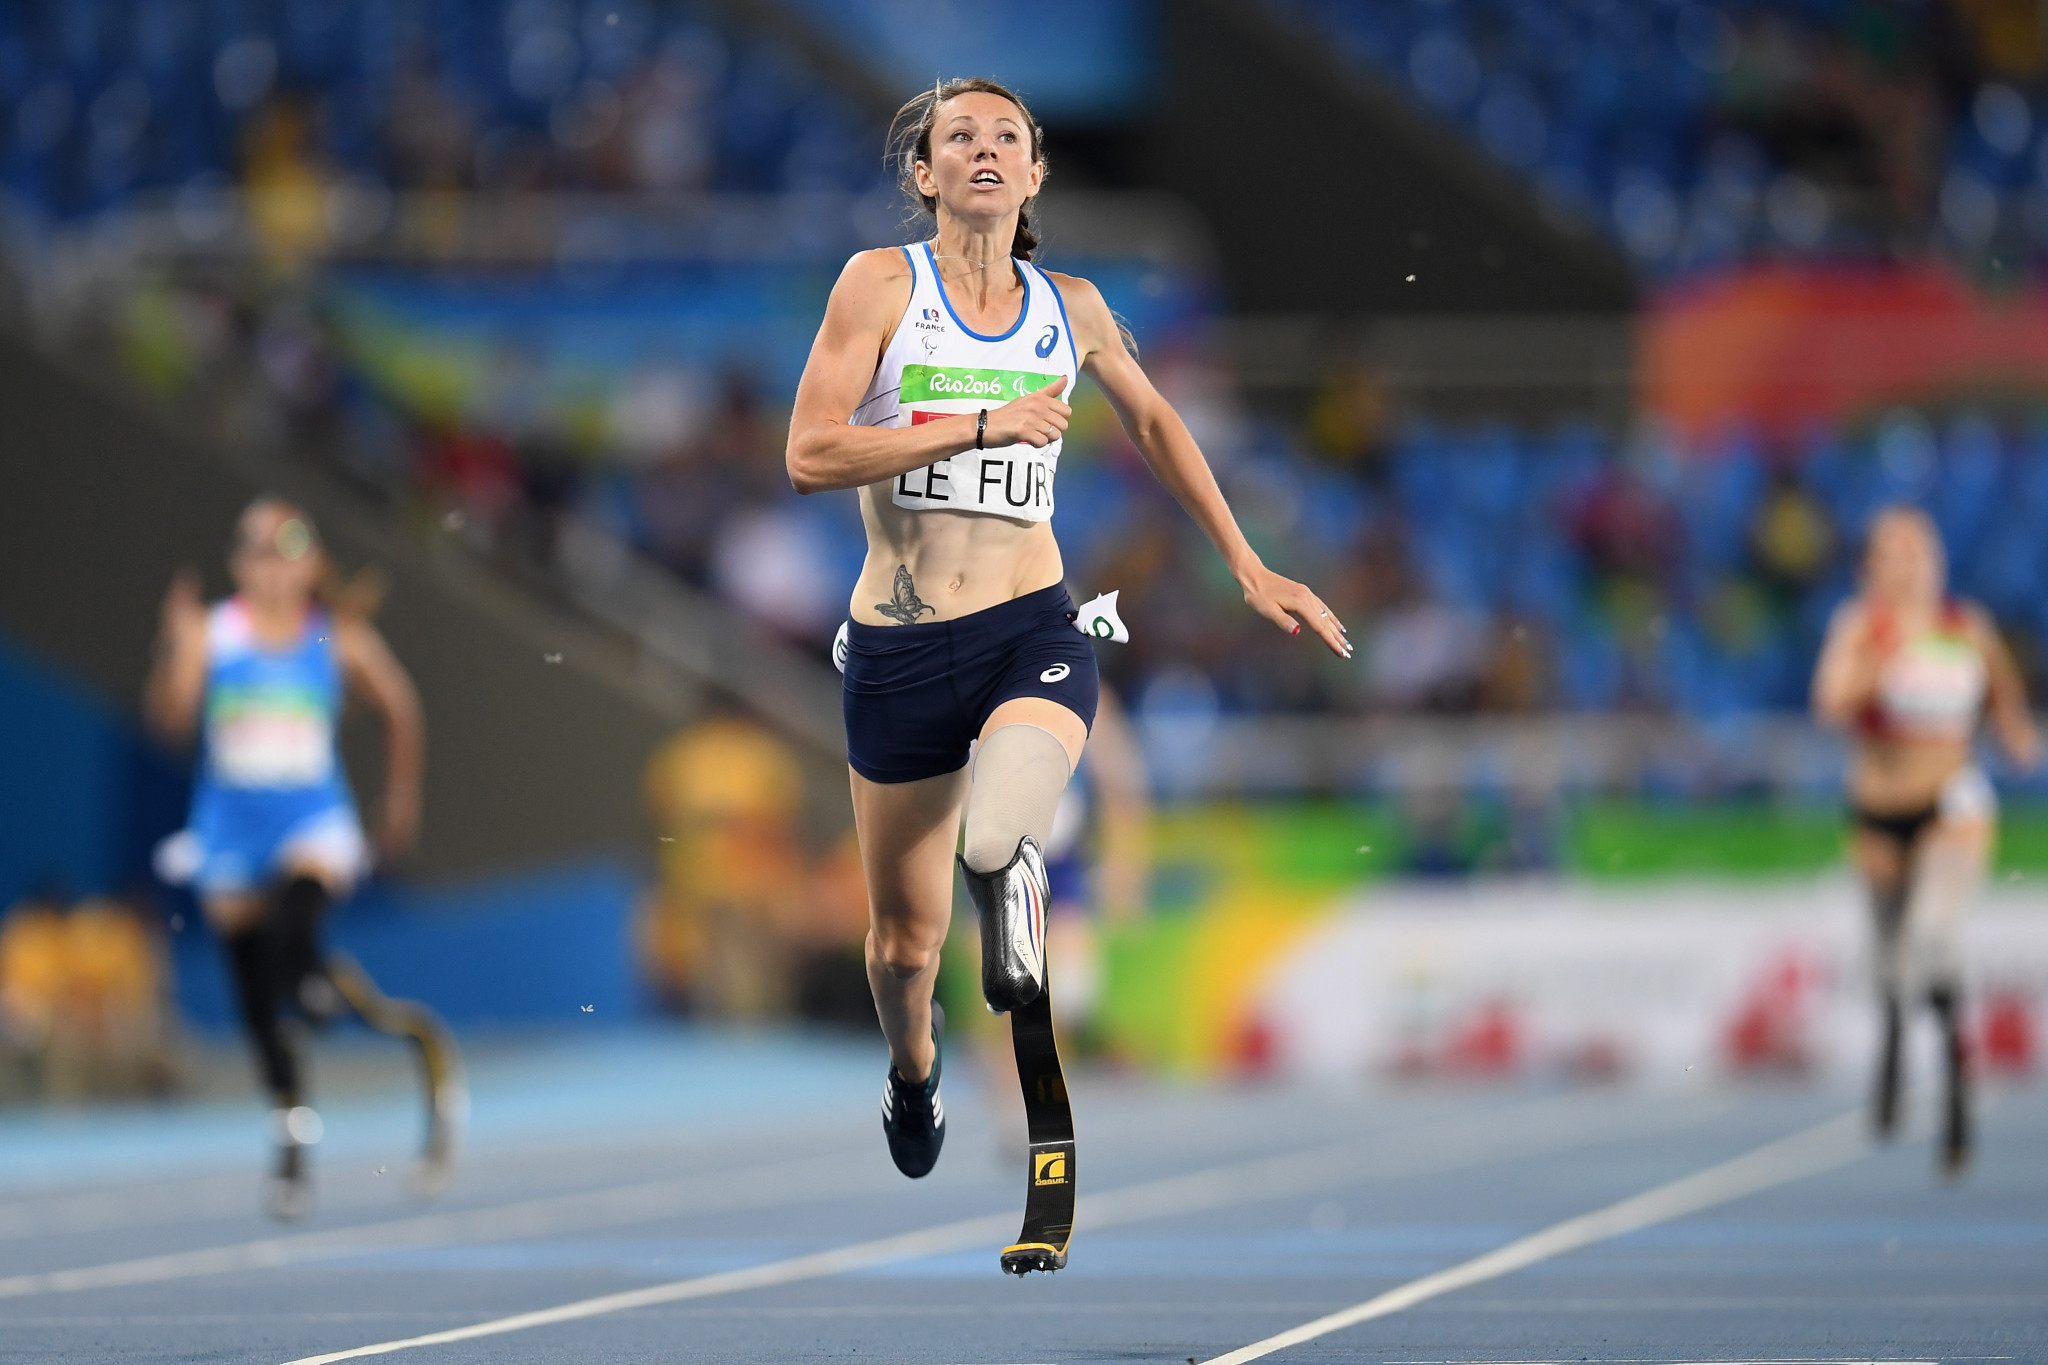 Double Paralympic champion Le Fur reveals hesitation at delaying retirement for Tokyo 2020